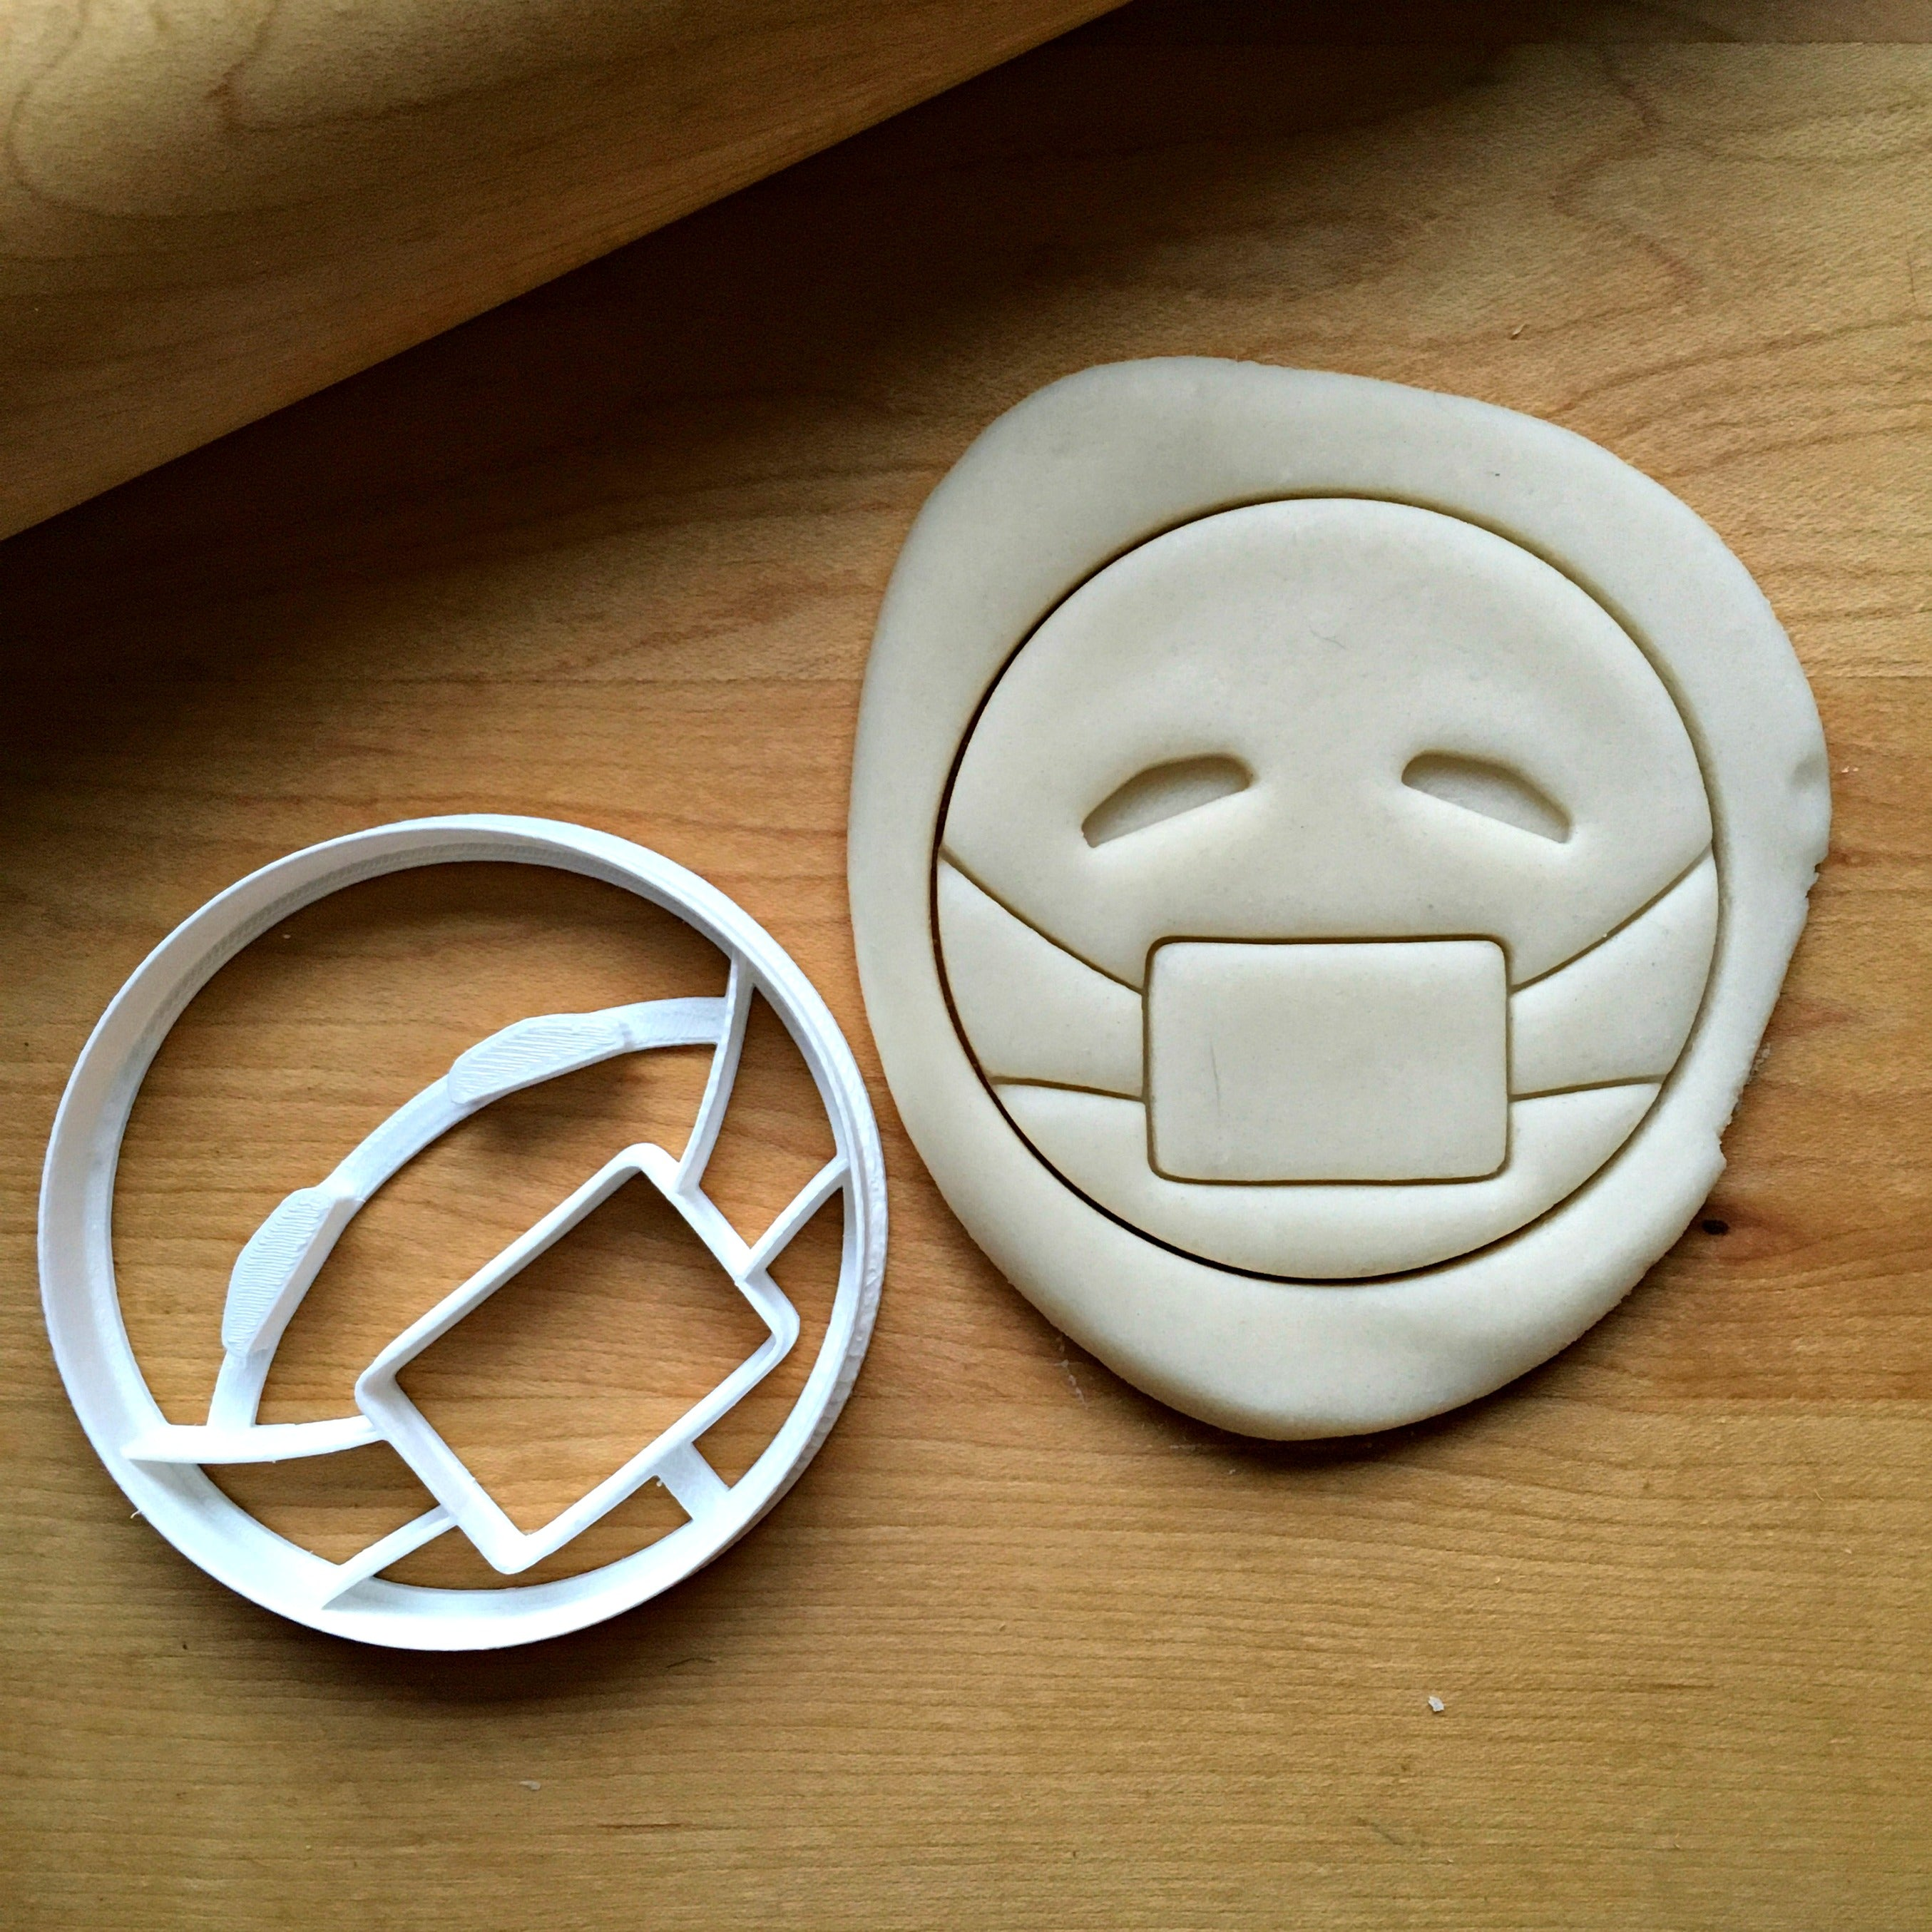 Masked Emoji Cookie Cutter/Dishwasher Safe